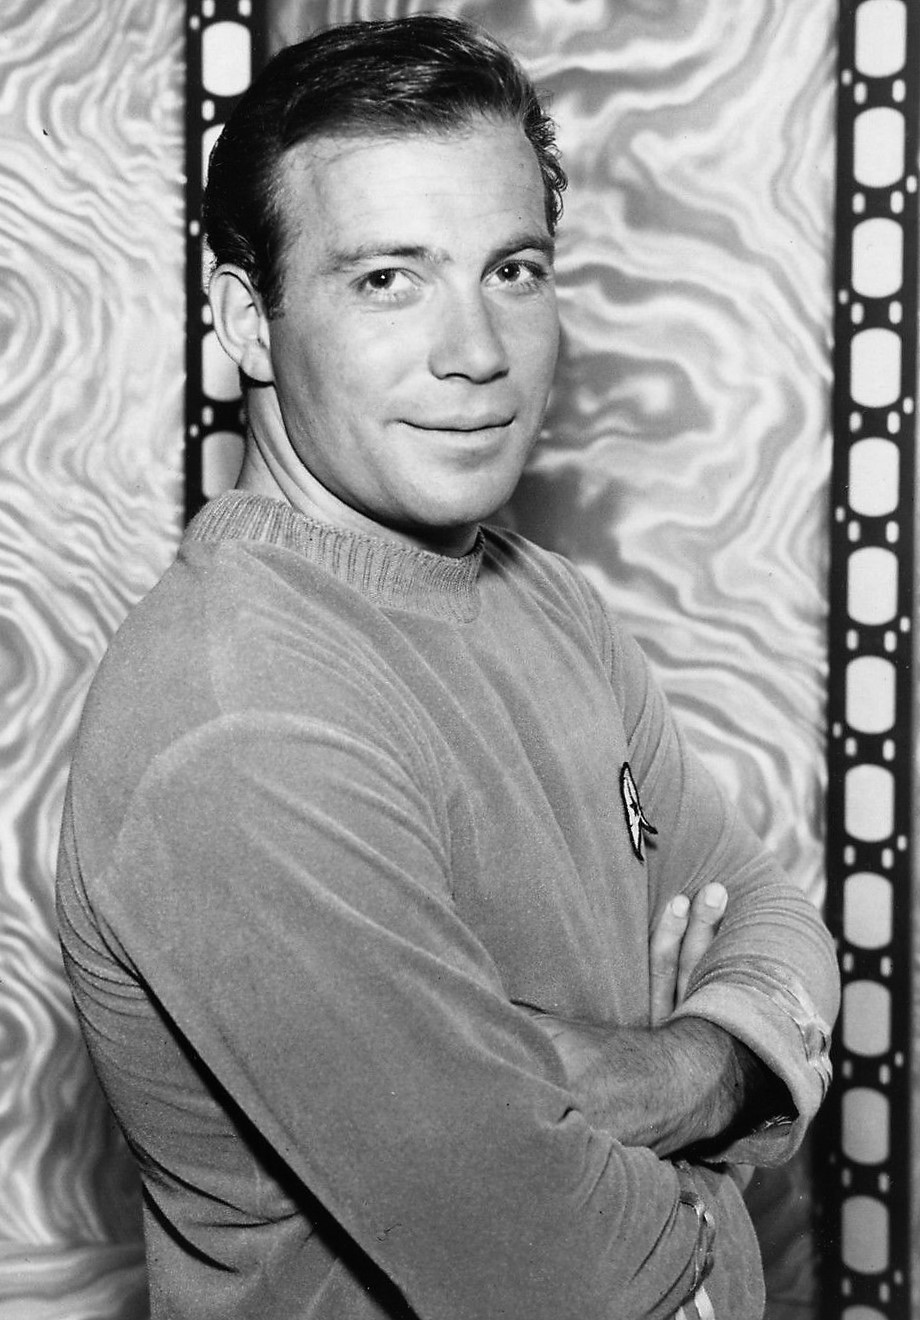 tumblr o51nyckBLl1ut6liuo1 1280 1 James T. Kirk william shatner vintage star trek promotional photograph Captain Kirk